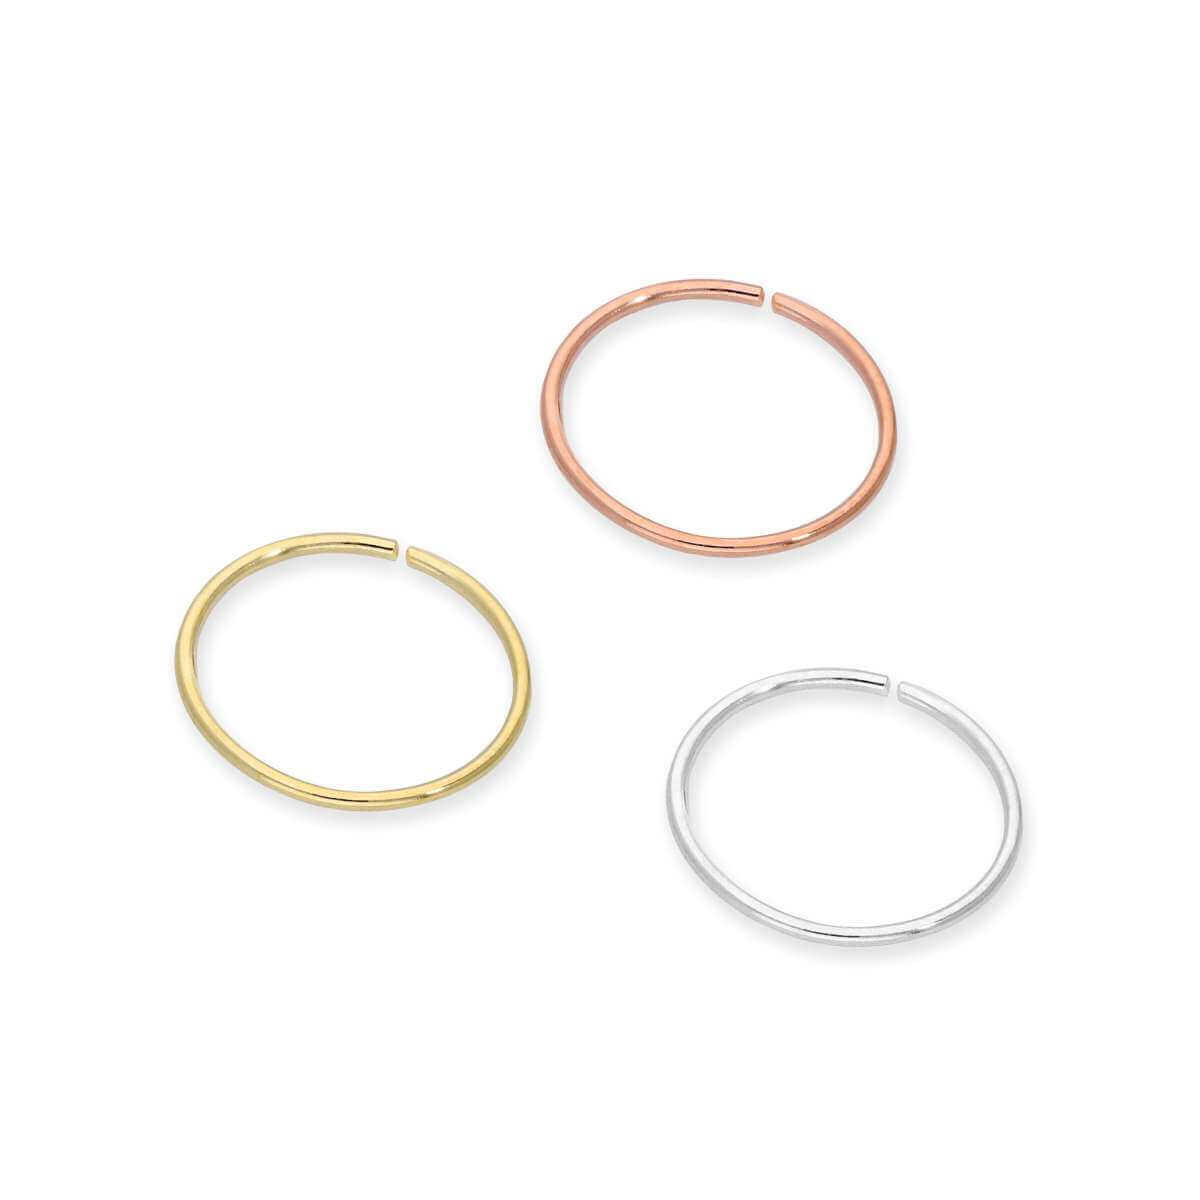 9ct Gold 8mm Nose Hoop Ring Set- Yellow Rose White